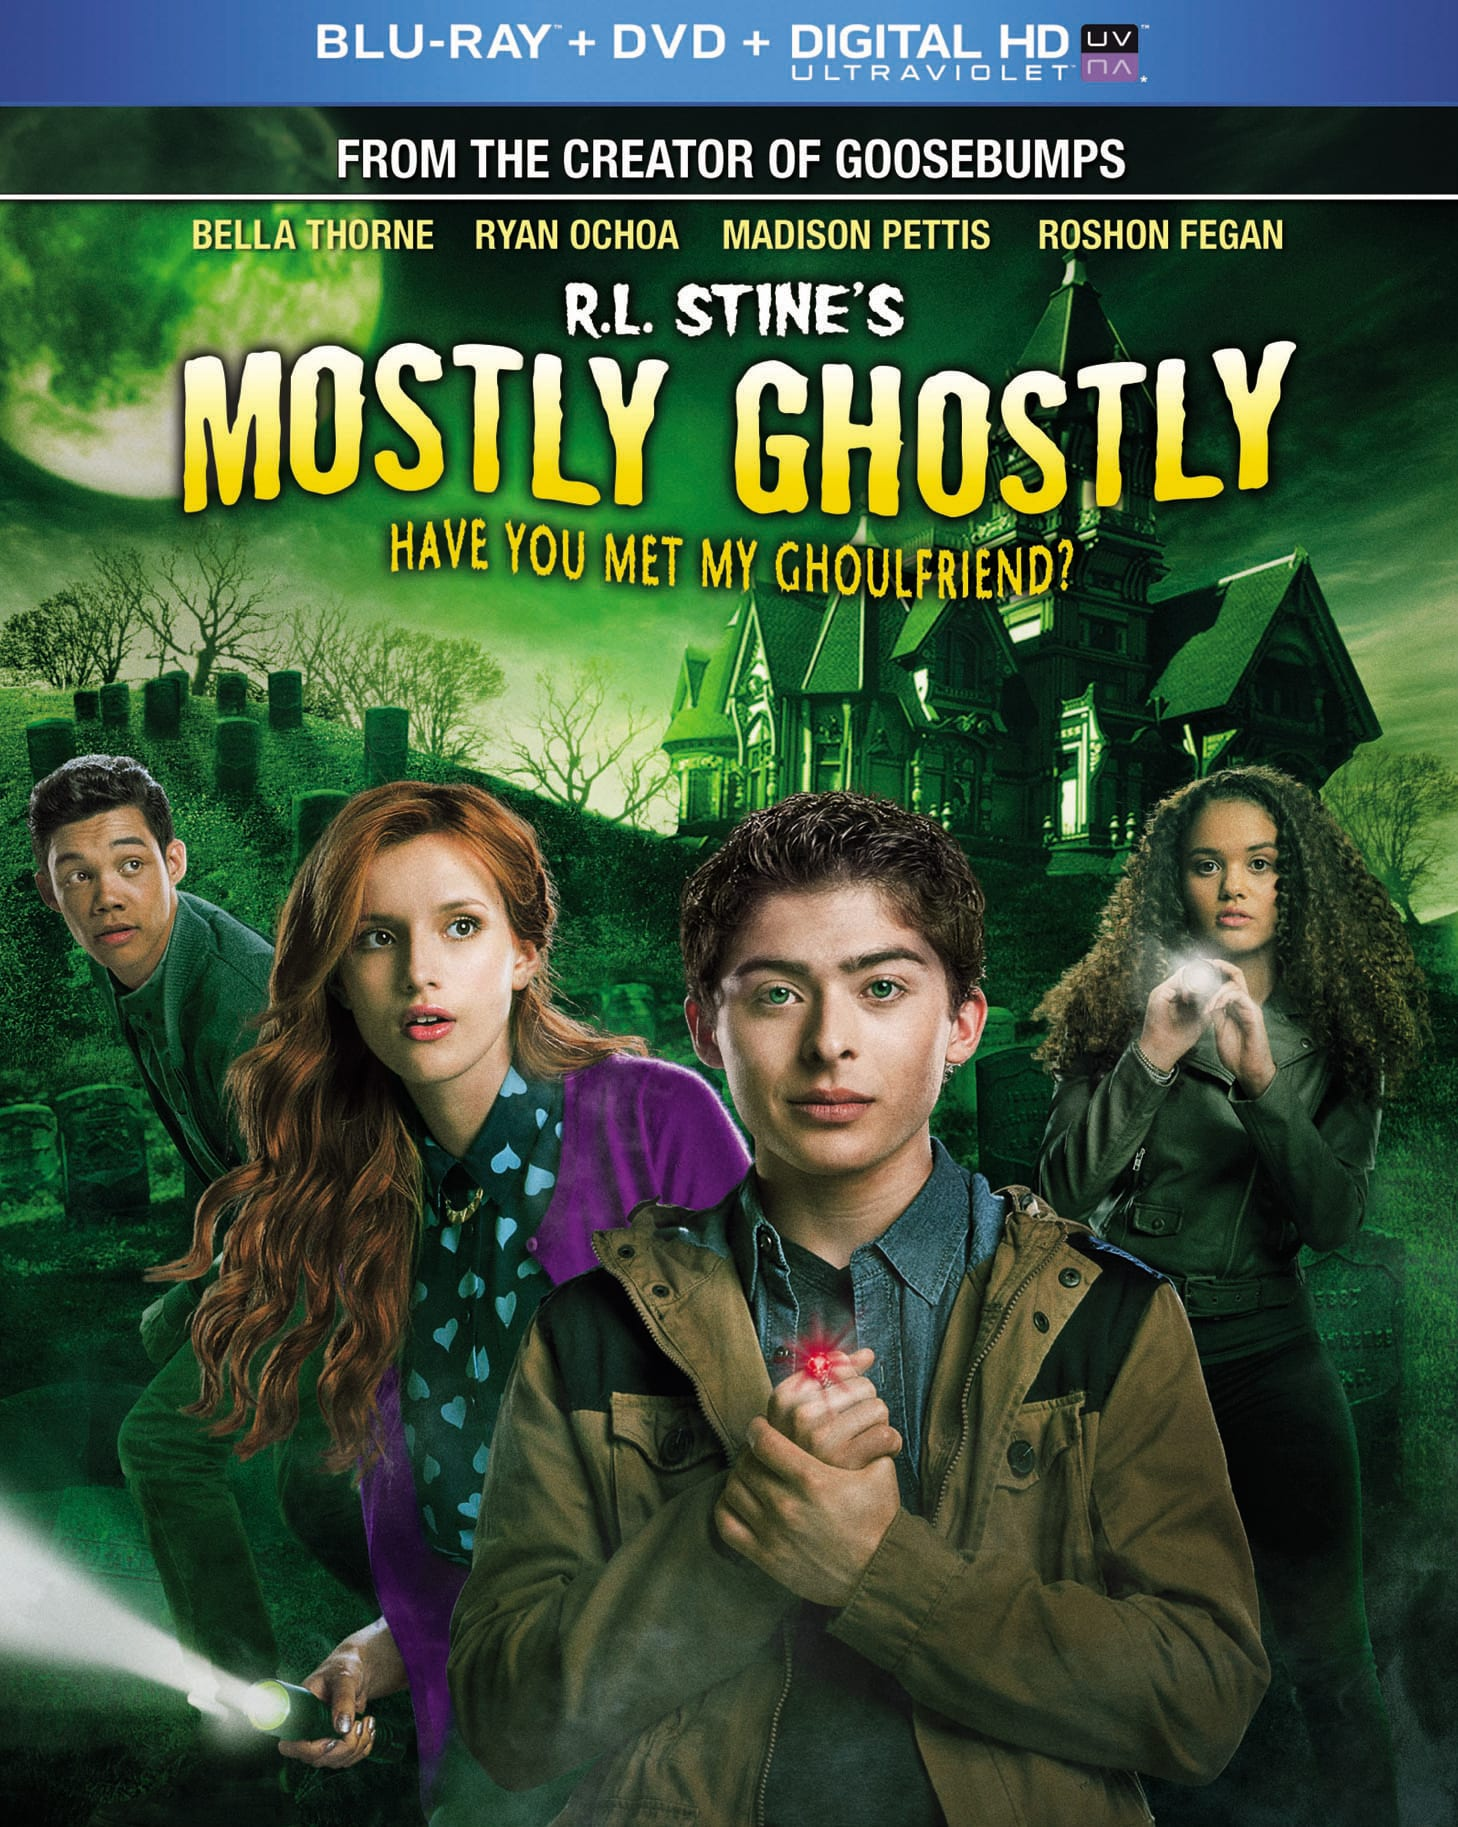 R.L. Stine's Mostly Ghostly: Have You Met My Ghoulfriend? (DVD + Digital + Ultraviolet) [Blu-ray]